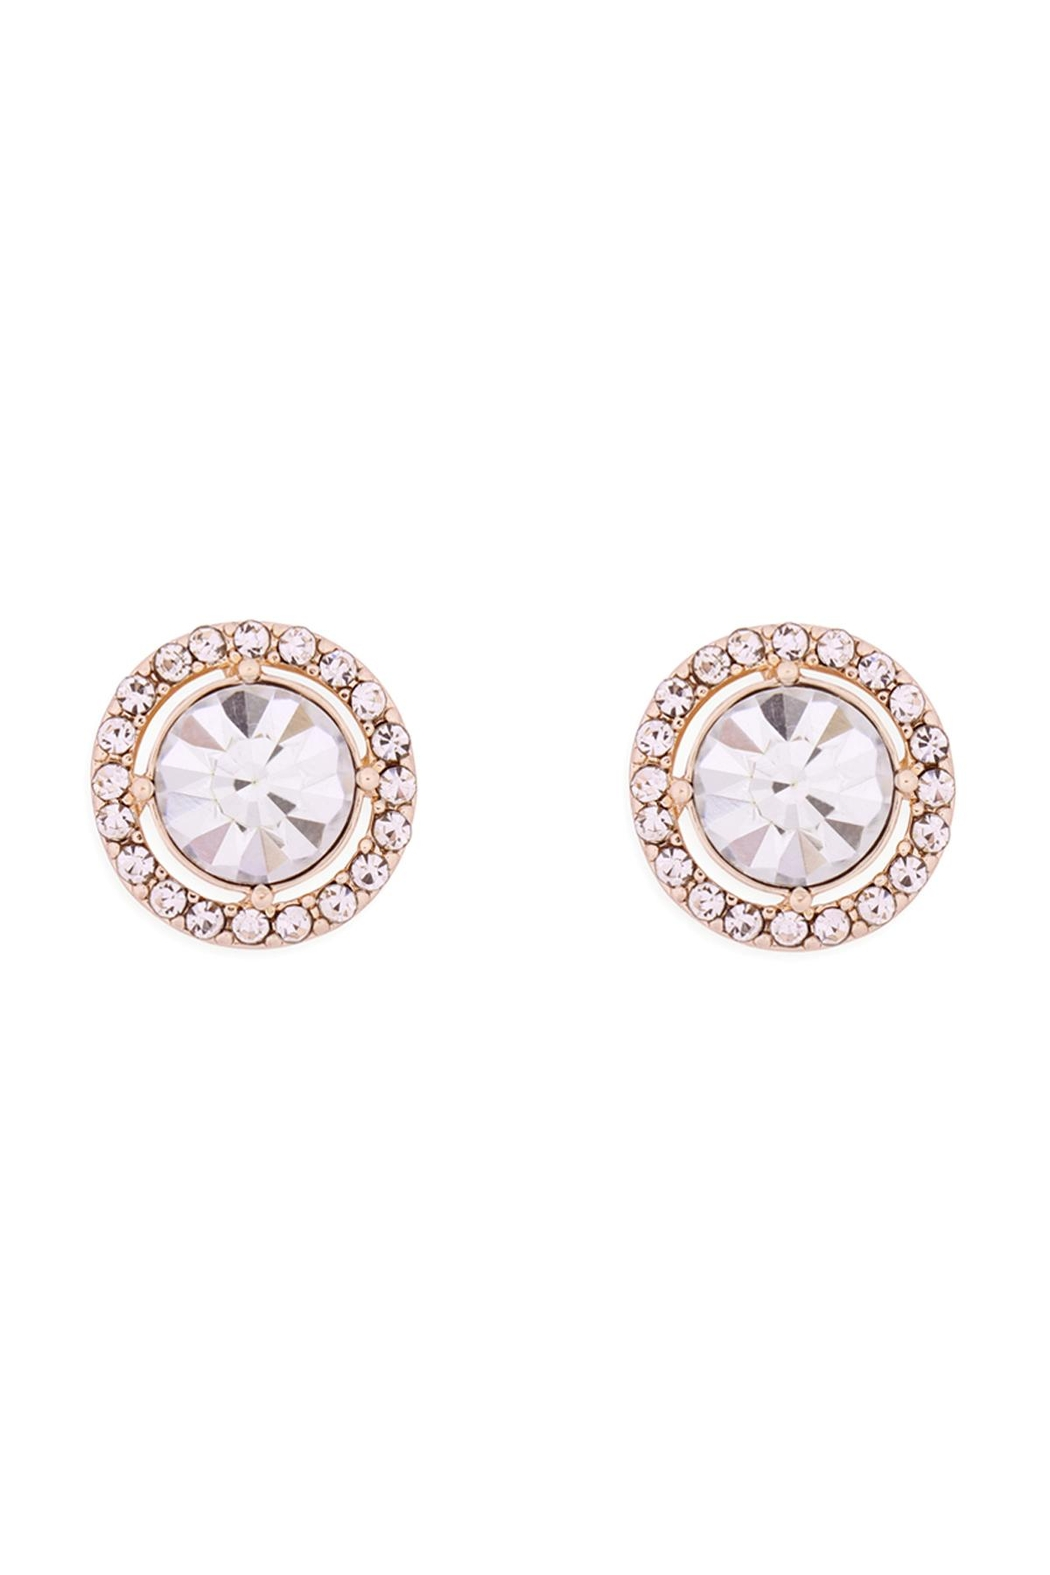 Riah Fashion Cubic-Zirconia-Round-Halo-Stud-Earrings - Main Image